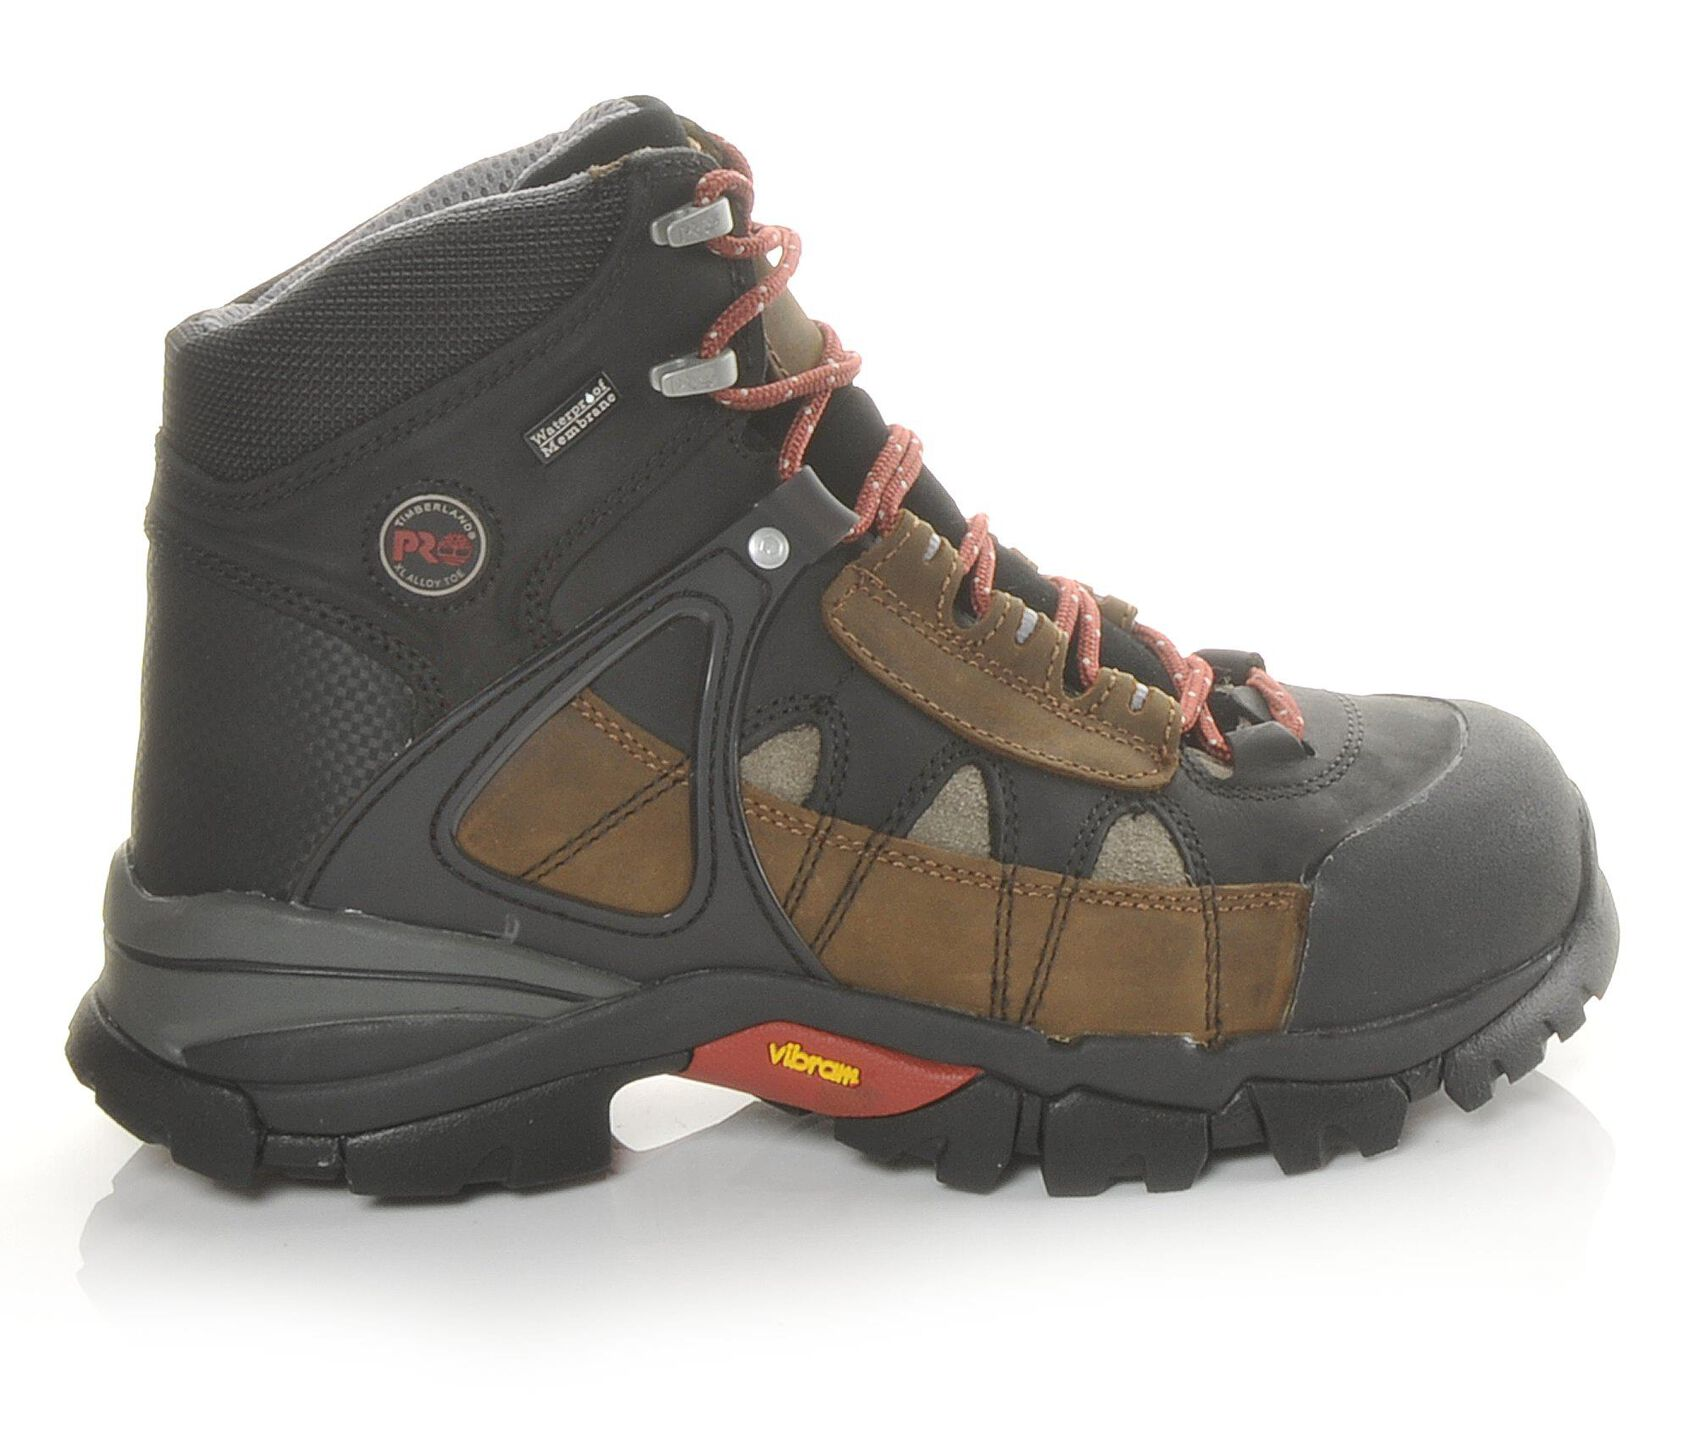 0274f4b2ed ... Timberland Pro Hyperion Alloy Safety Toe 90646 Work Boots. Previous